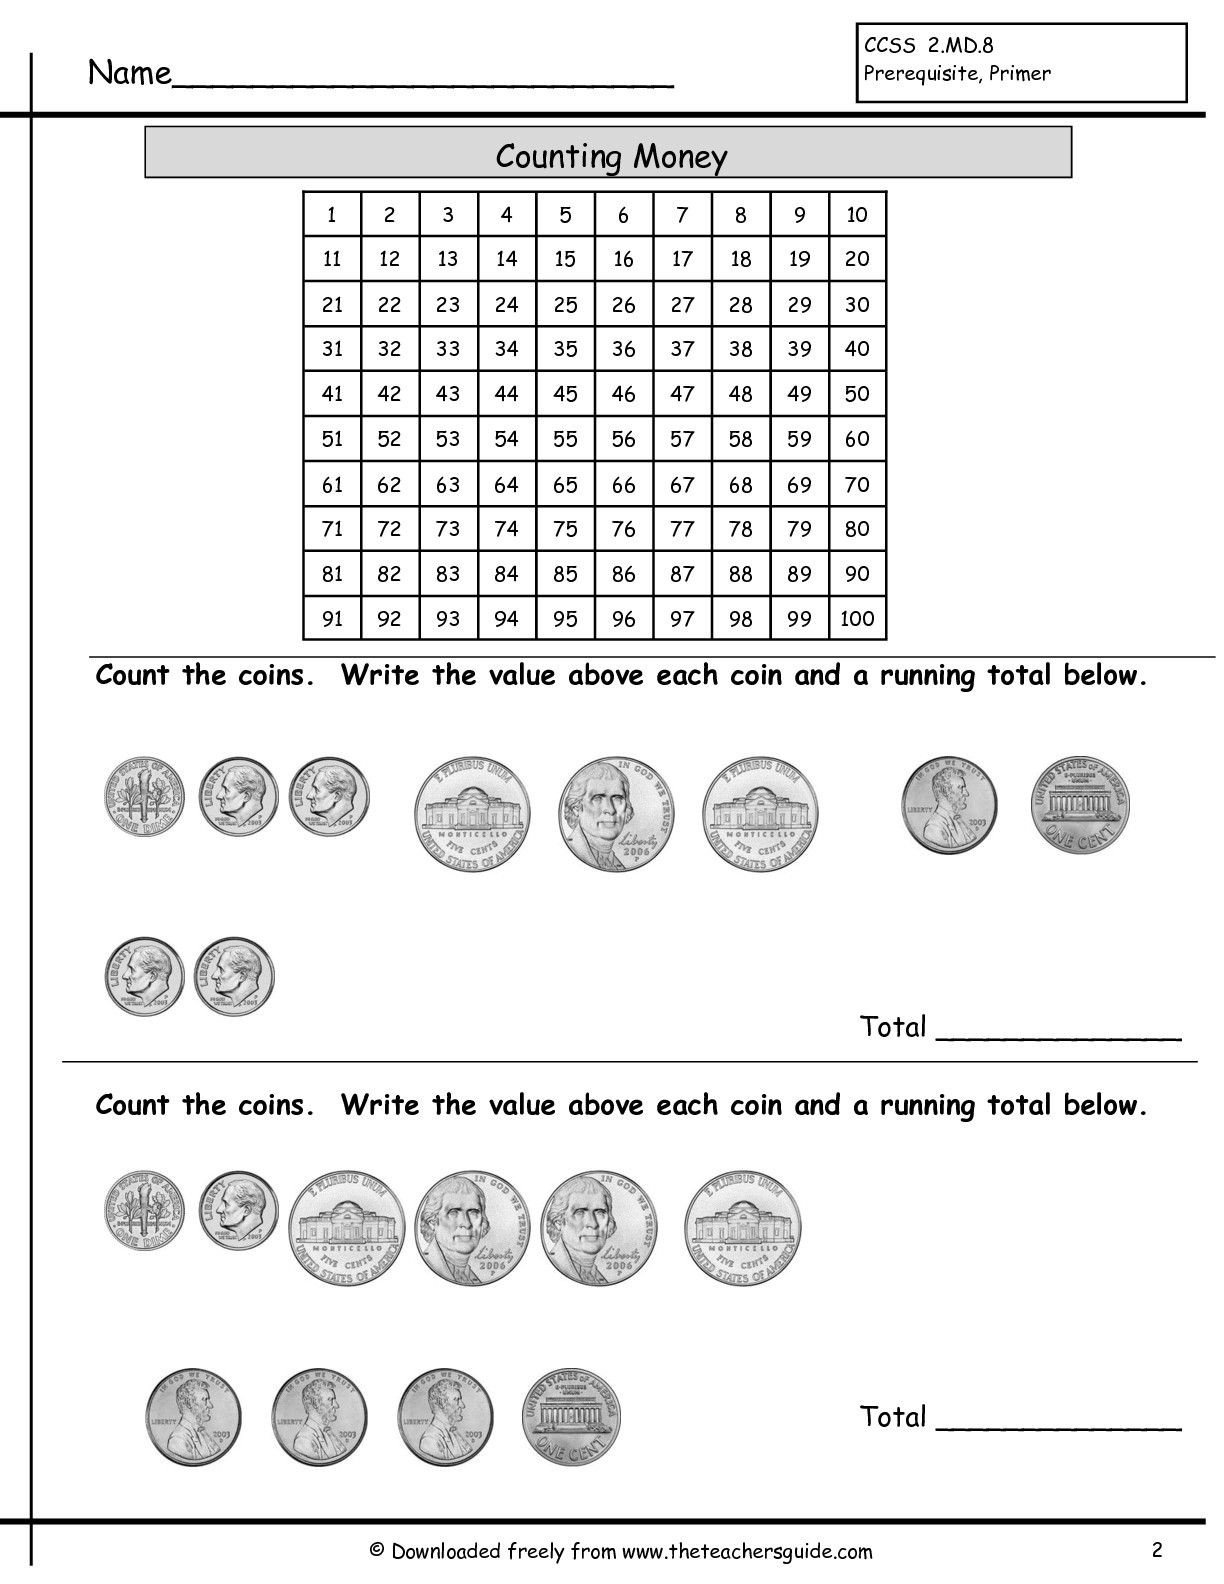 Free Counting Coins Worksheets Counting Coins Worksheet